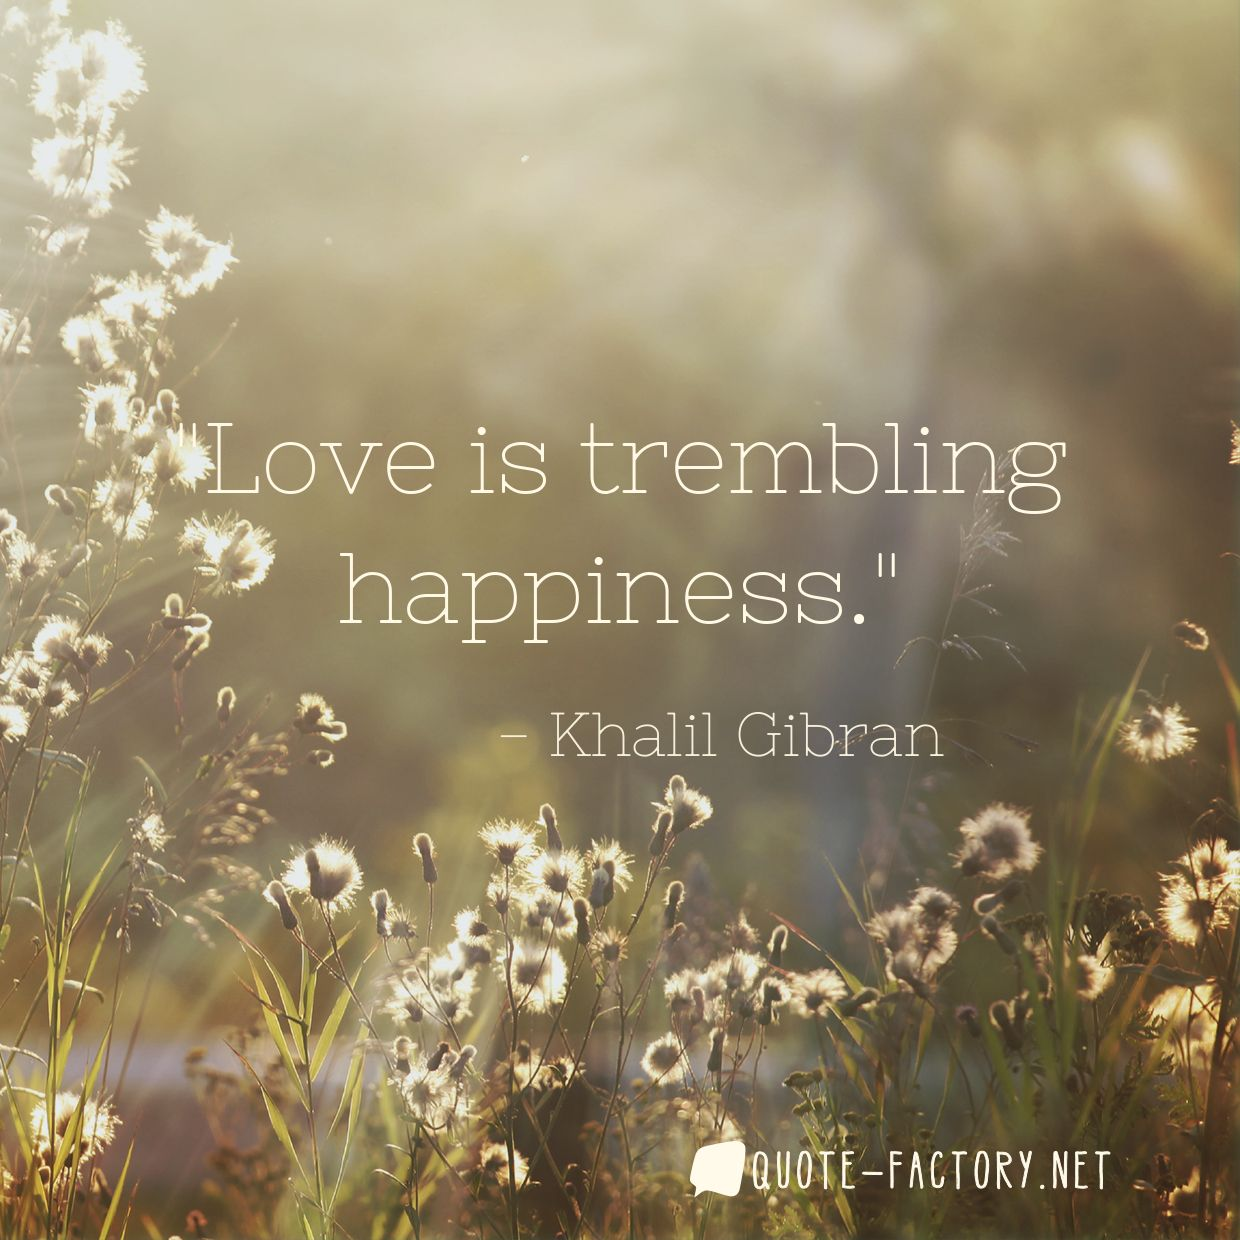 Love is trembling happiness.